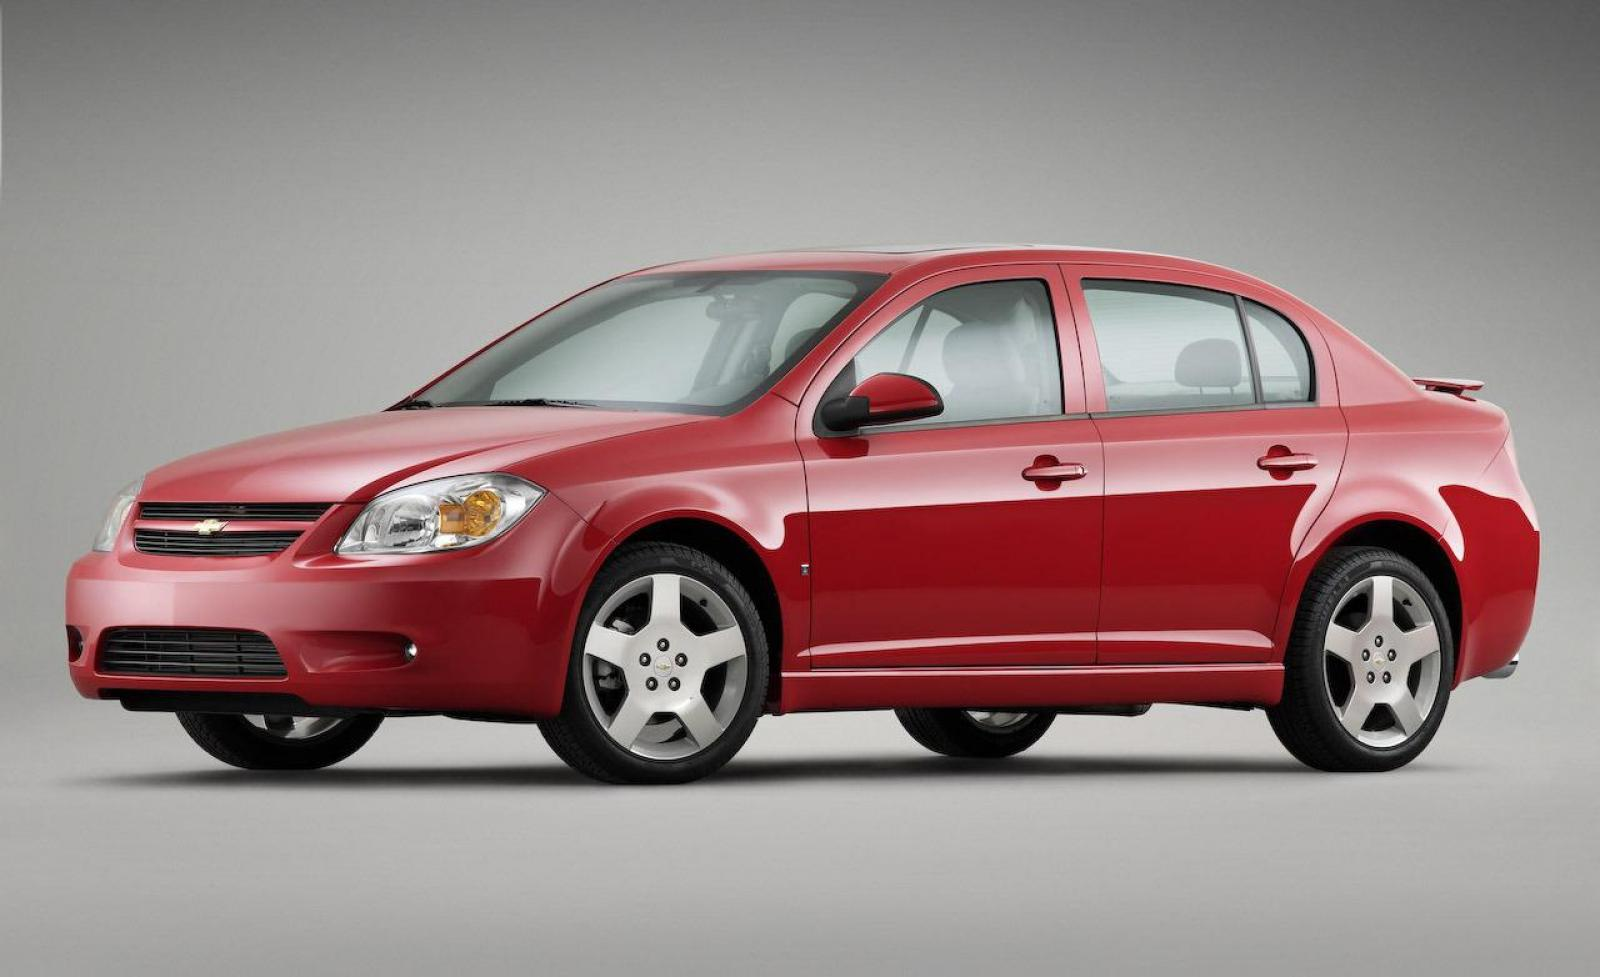 800 1024 1280 1600 origin 2008 Chevrolet Cobalt ...